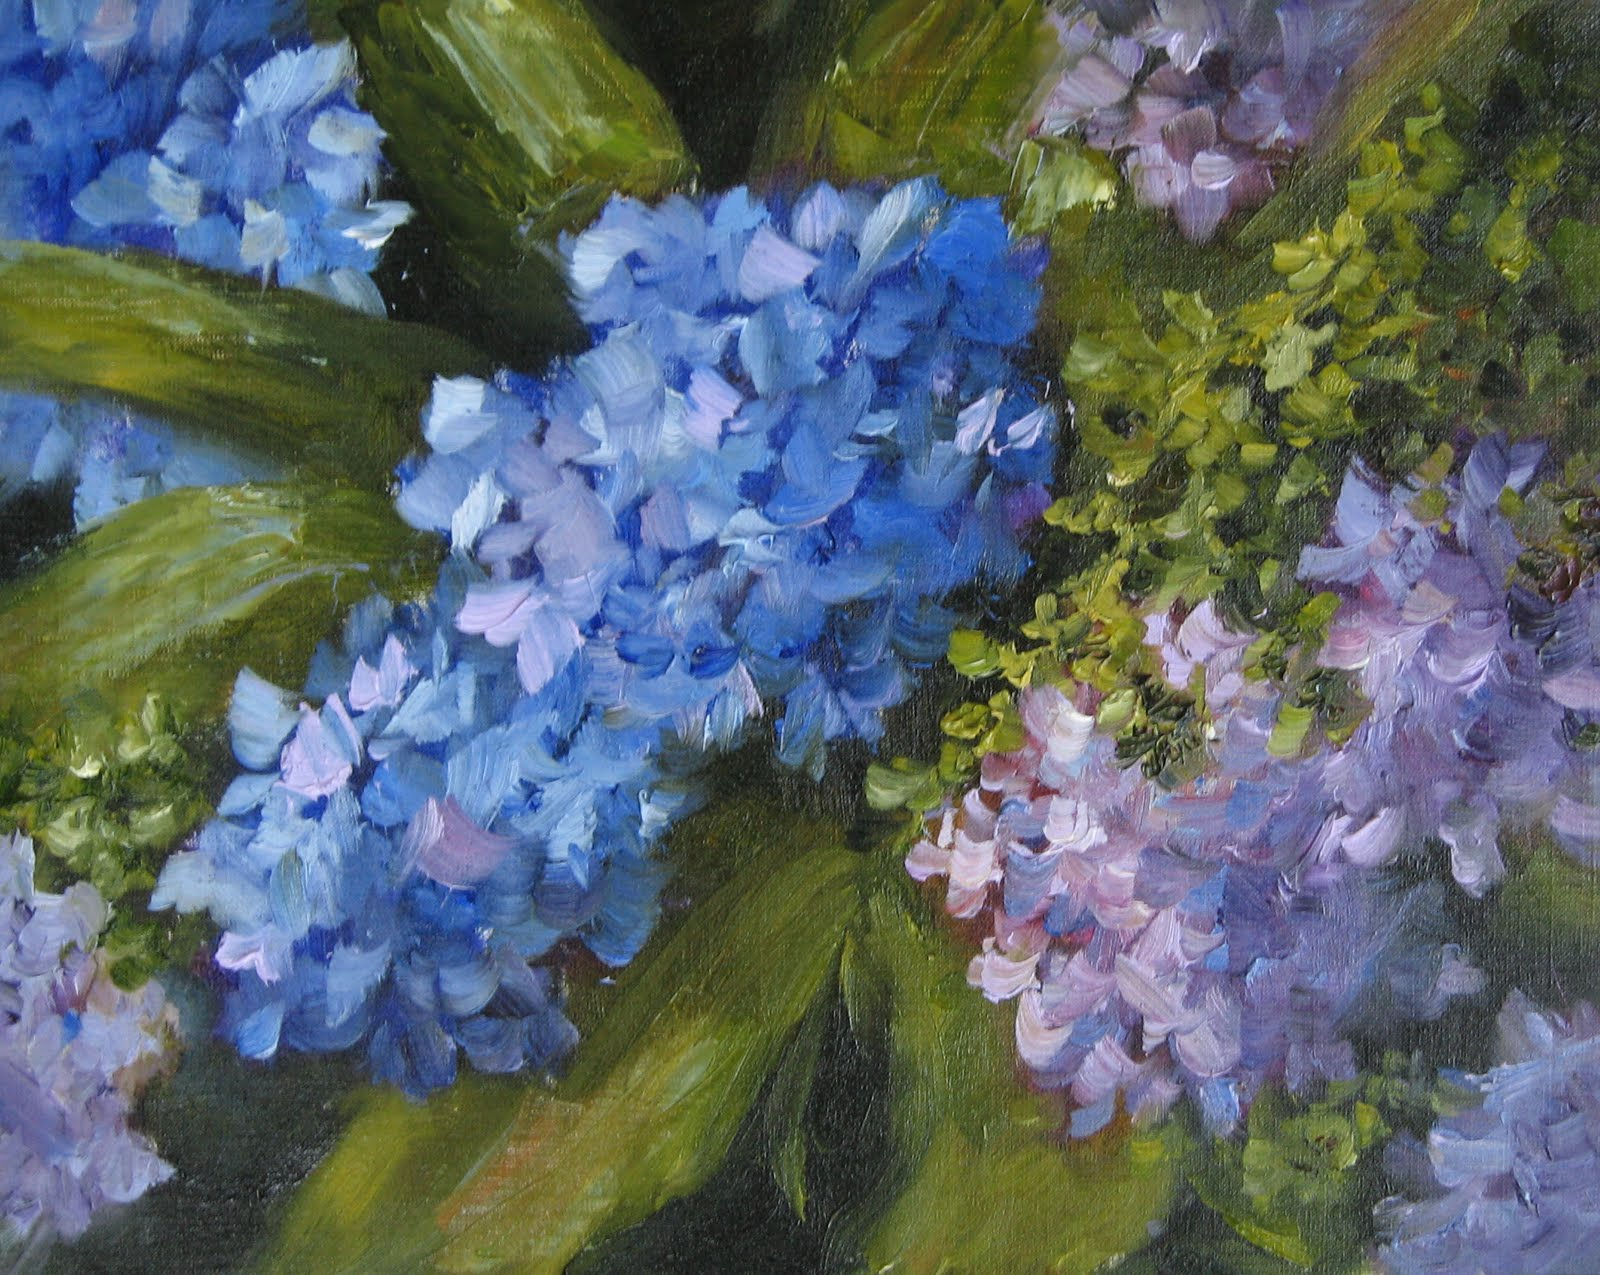 """Flower Study #10 Hydrangeas"" original fine art by Pat Fiorello"